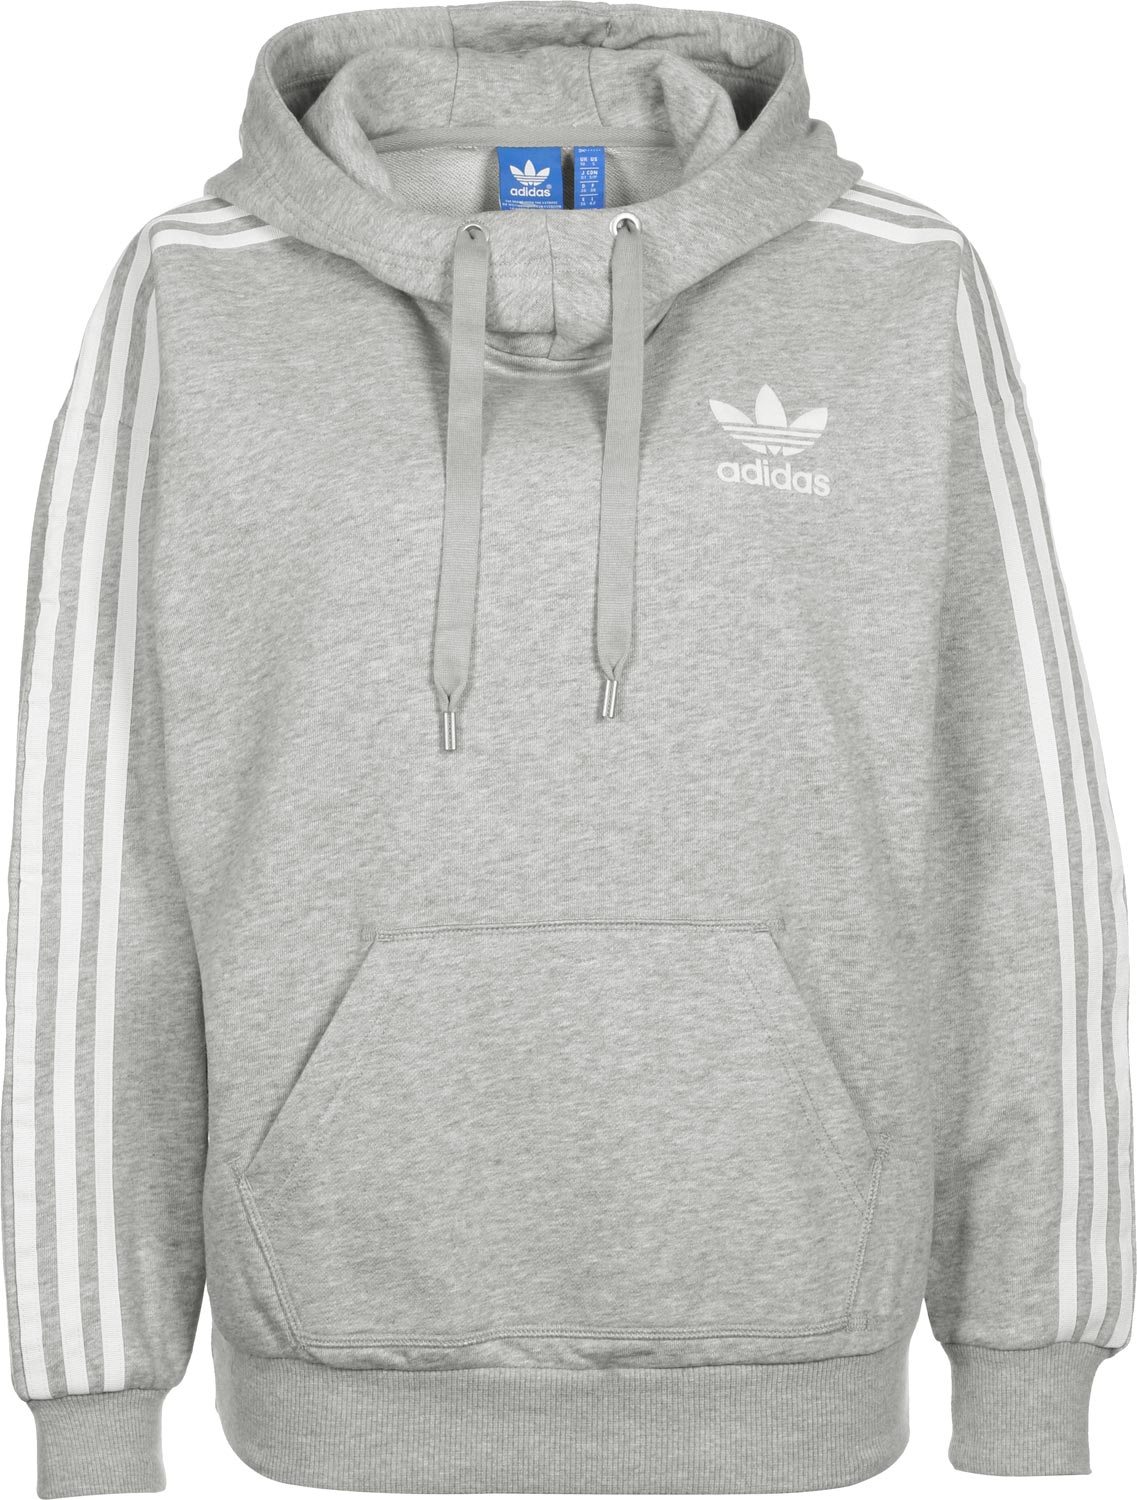 adidas 3 stripe w hoodie grau meliert. Black Bedroom Furniture Sets. Home Design Ideas